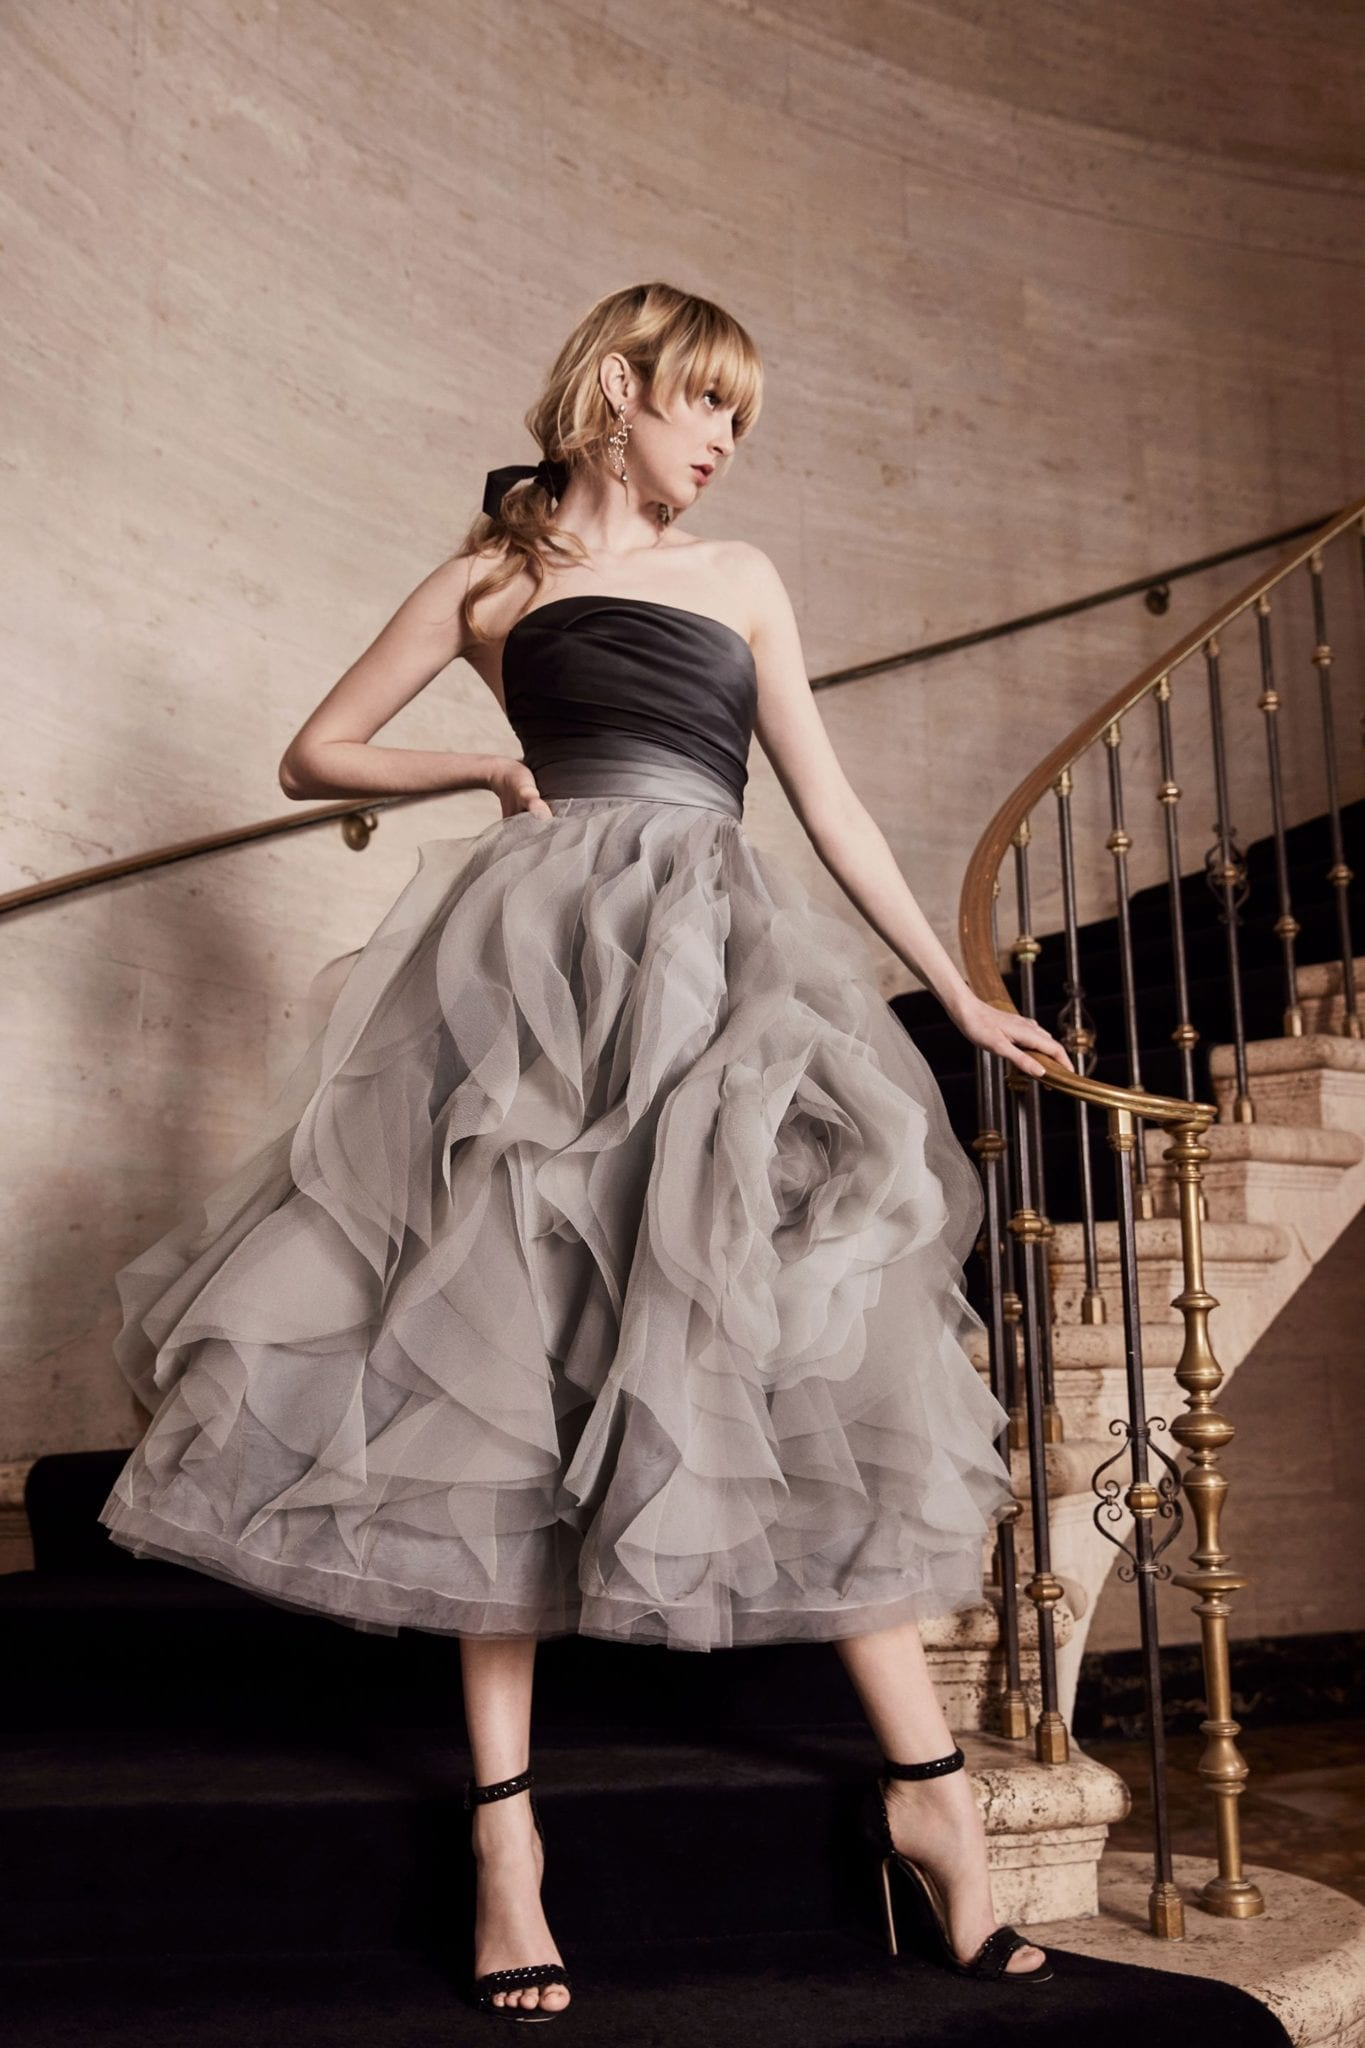 Strapless Dresses…We Select The Most Sizzling For Summer